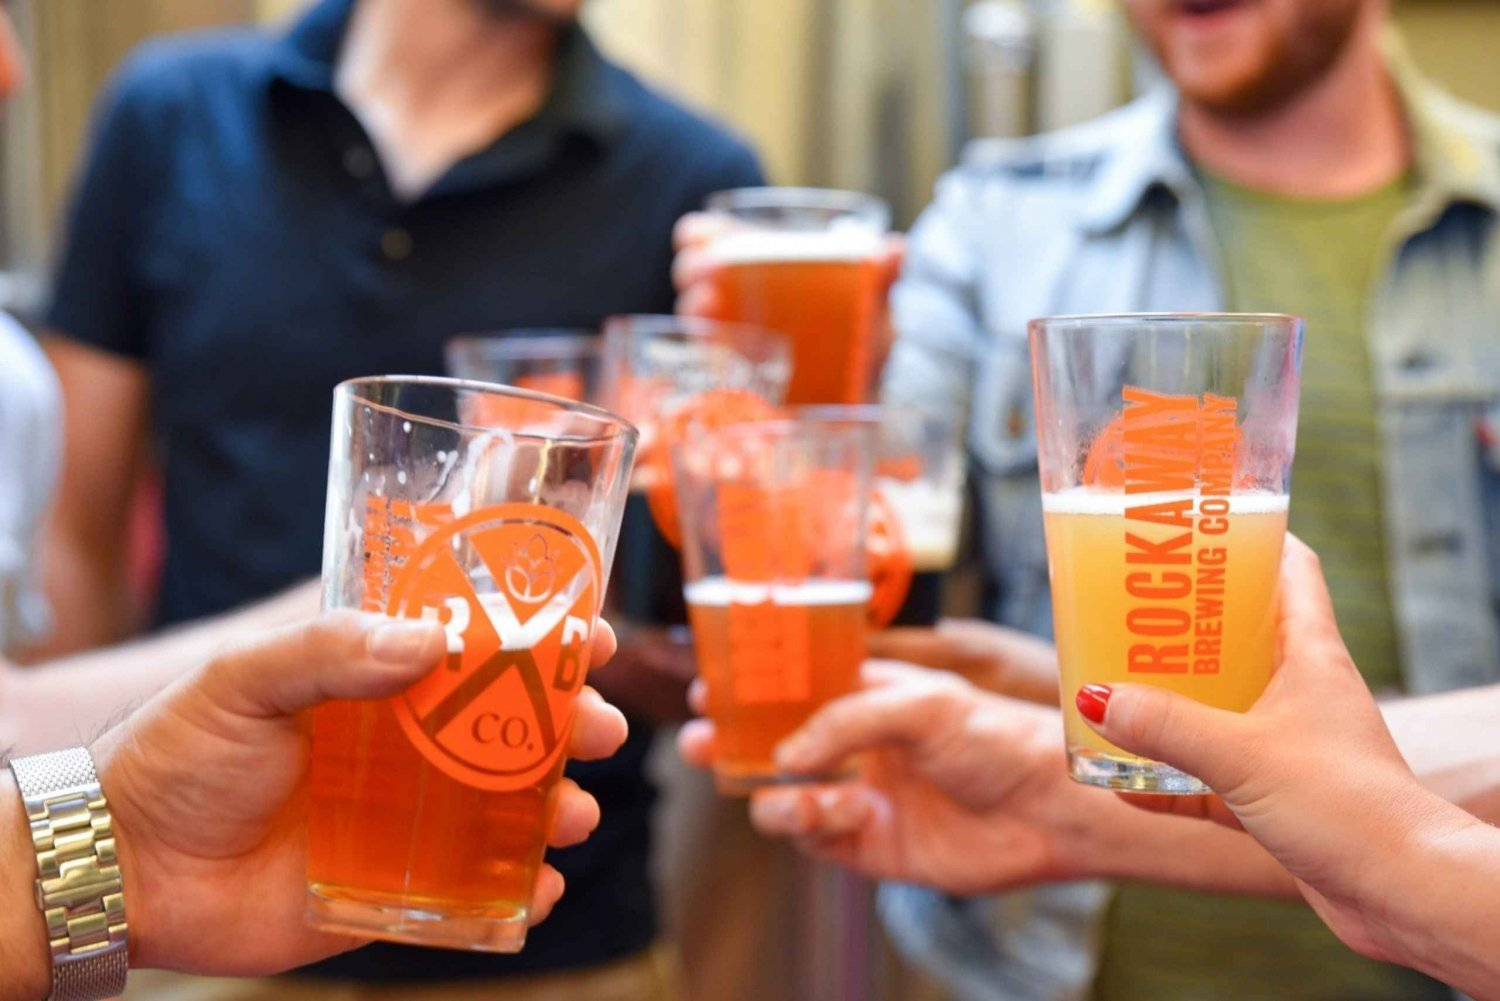 3-Hour NYC Brewery Tour with Beer Tastings & Food